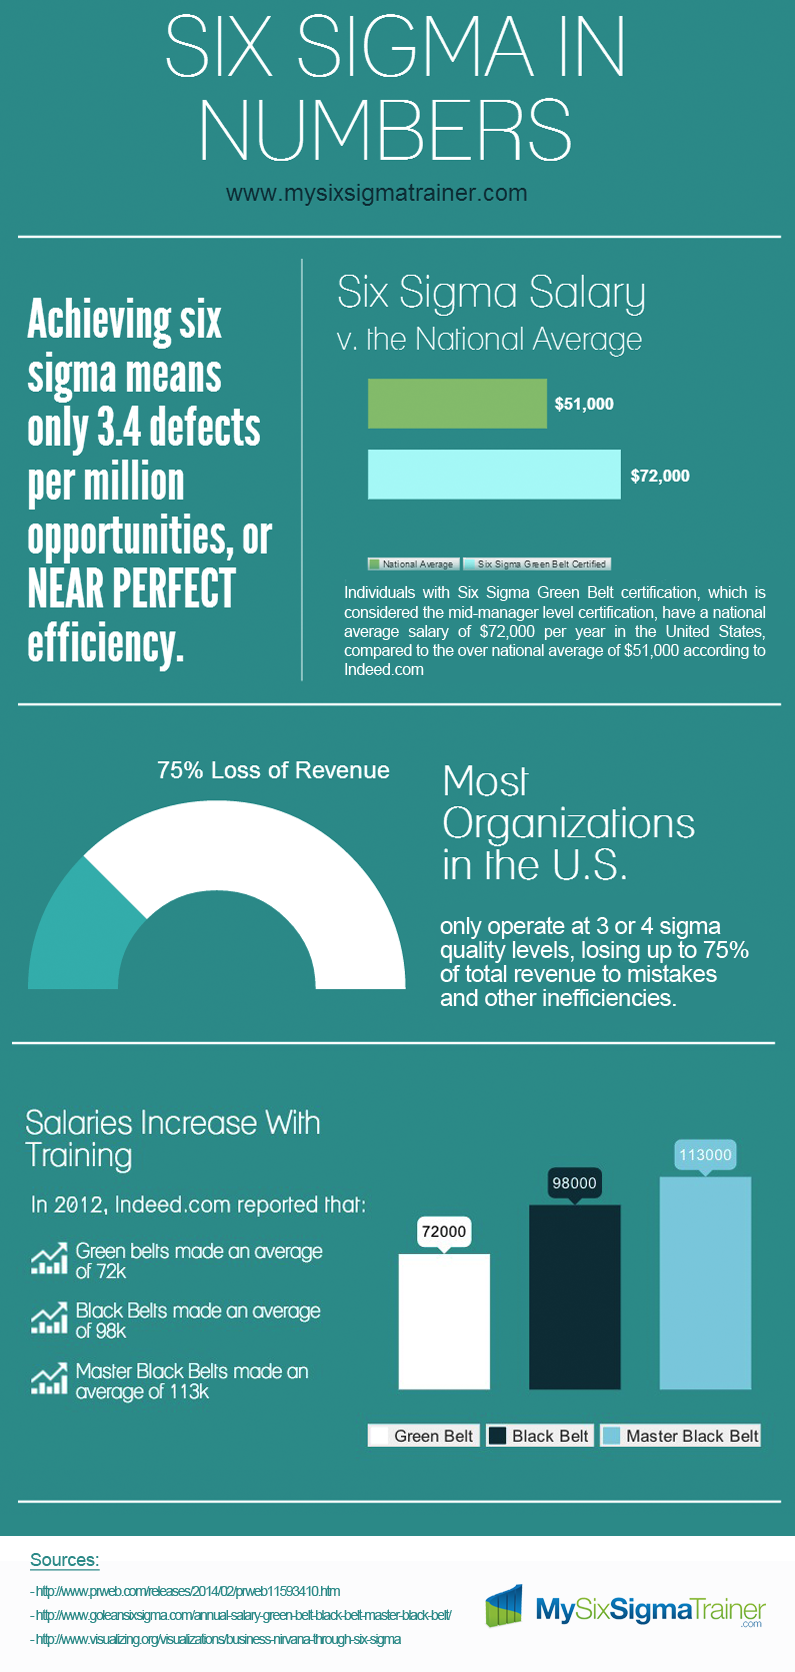 lean six sigma salary infographic